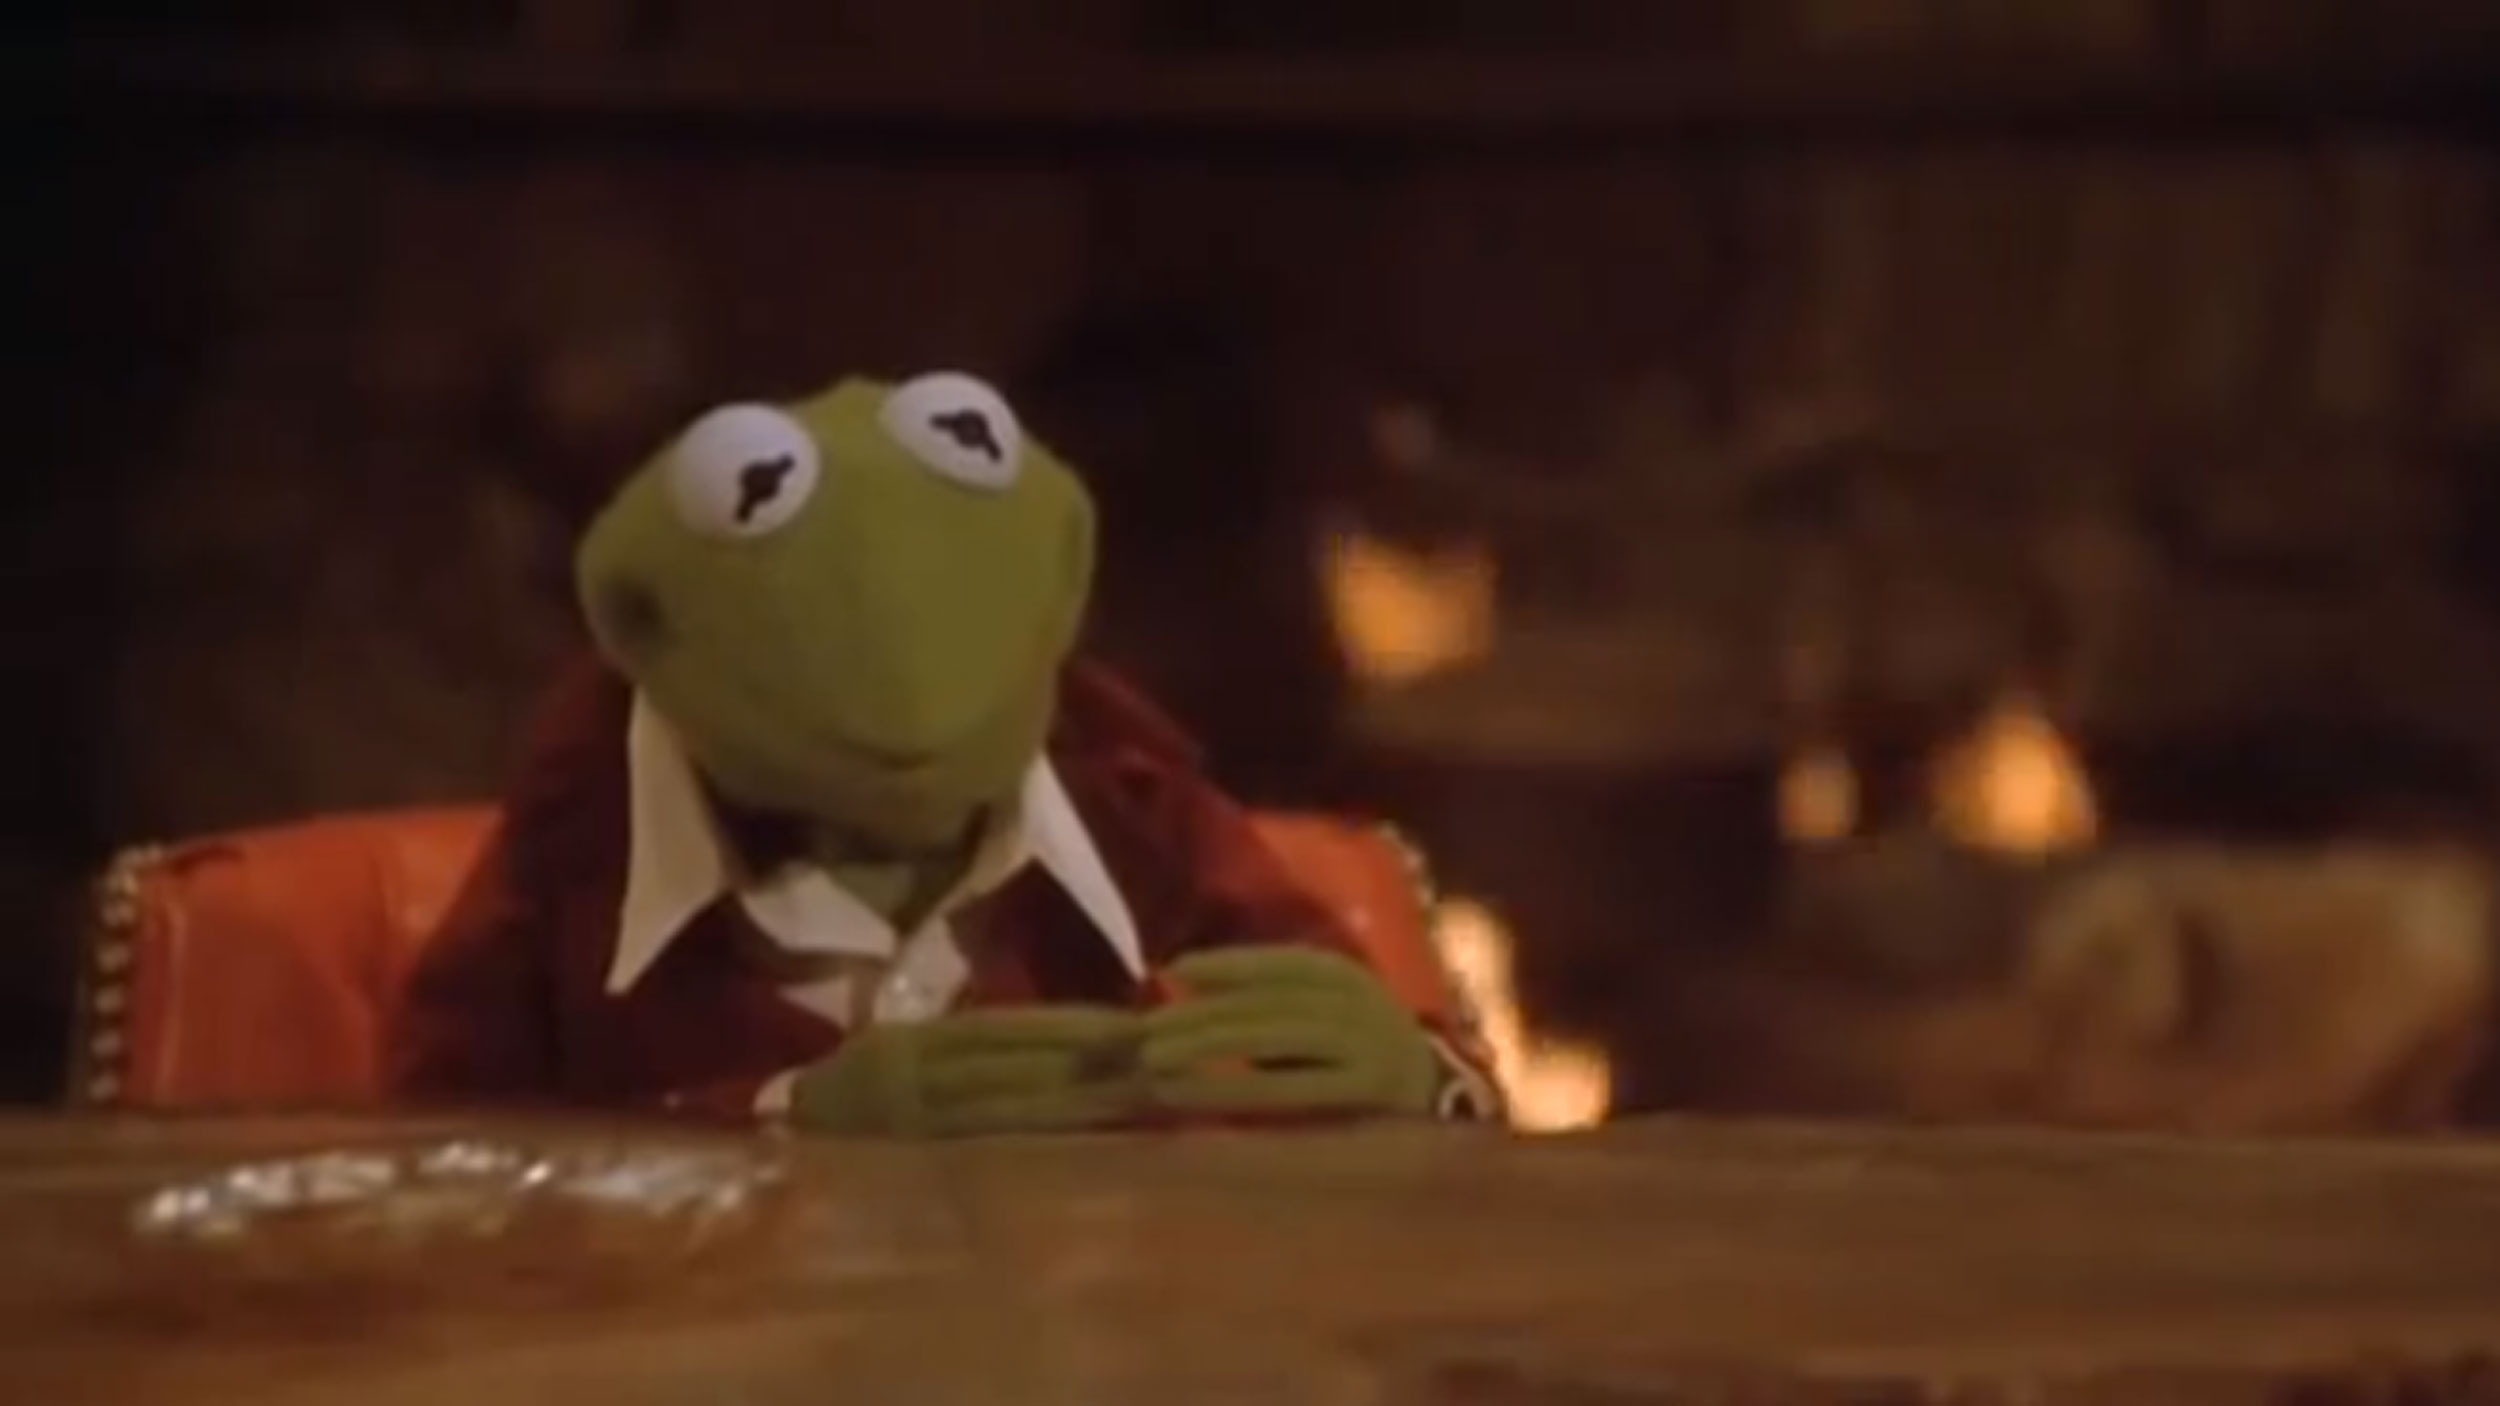 Rolf-Kermit-Wallow-in-Moderate-to-Severe-Post-Breakup-Depression